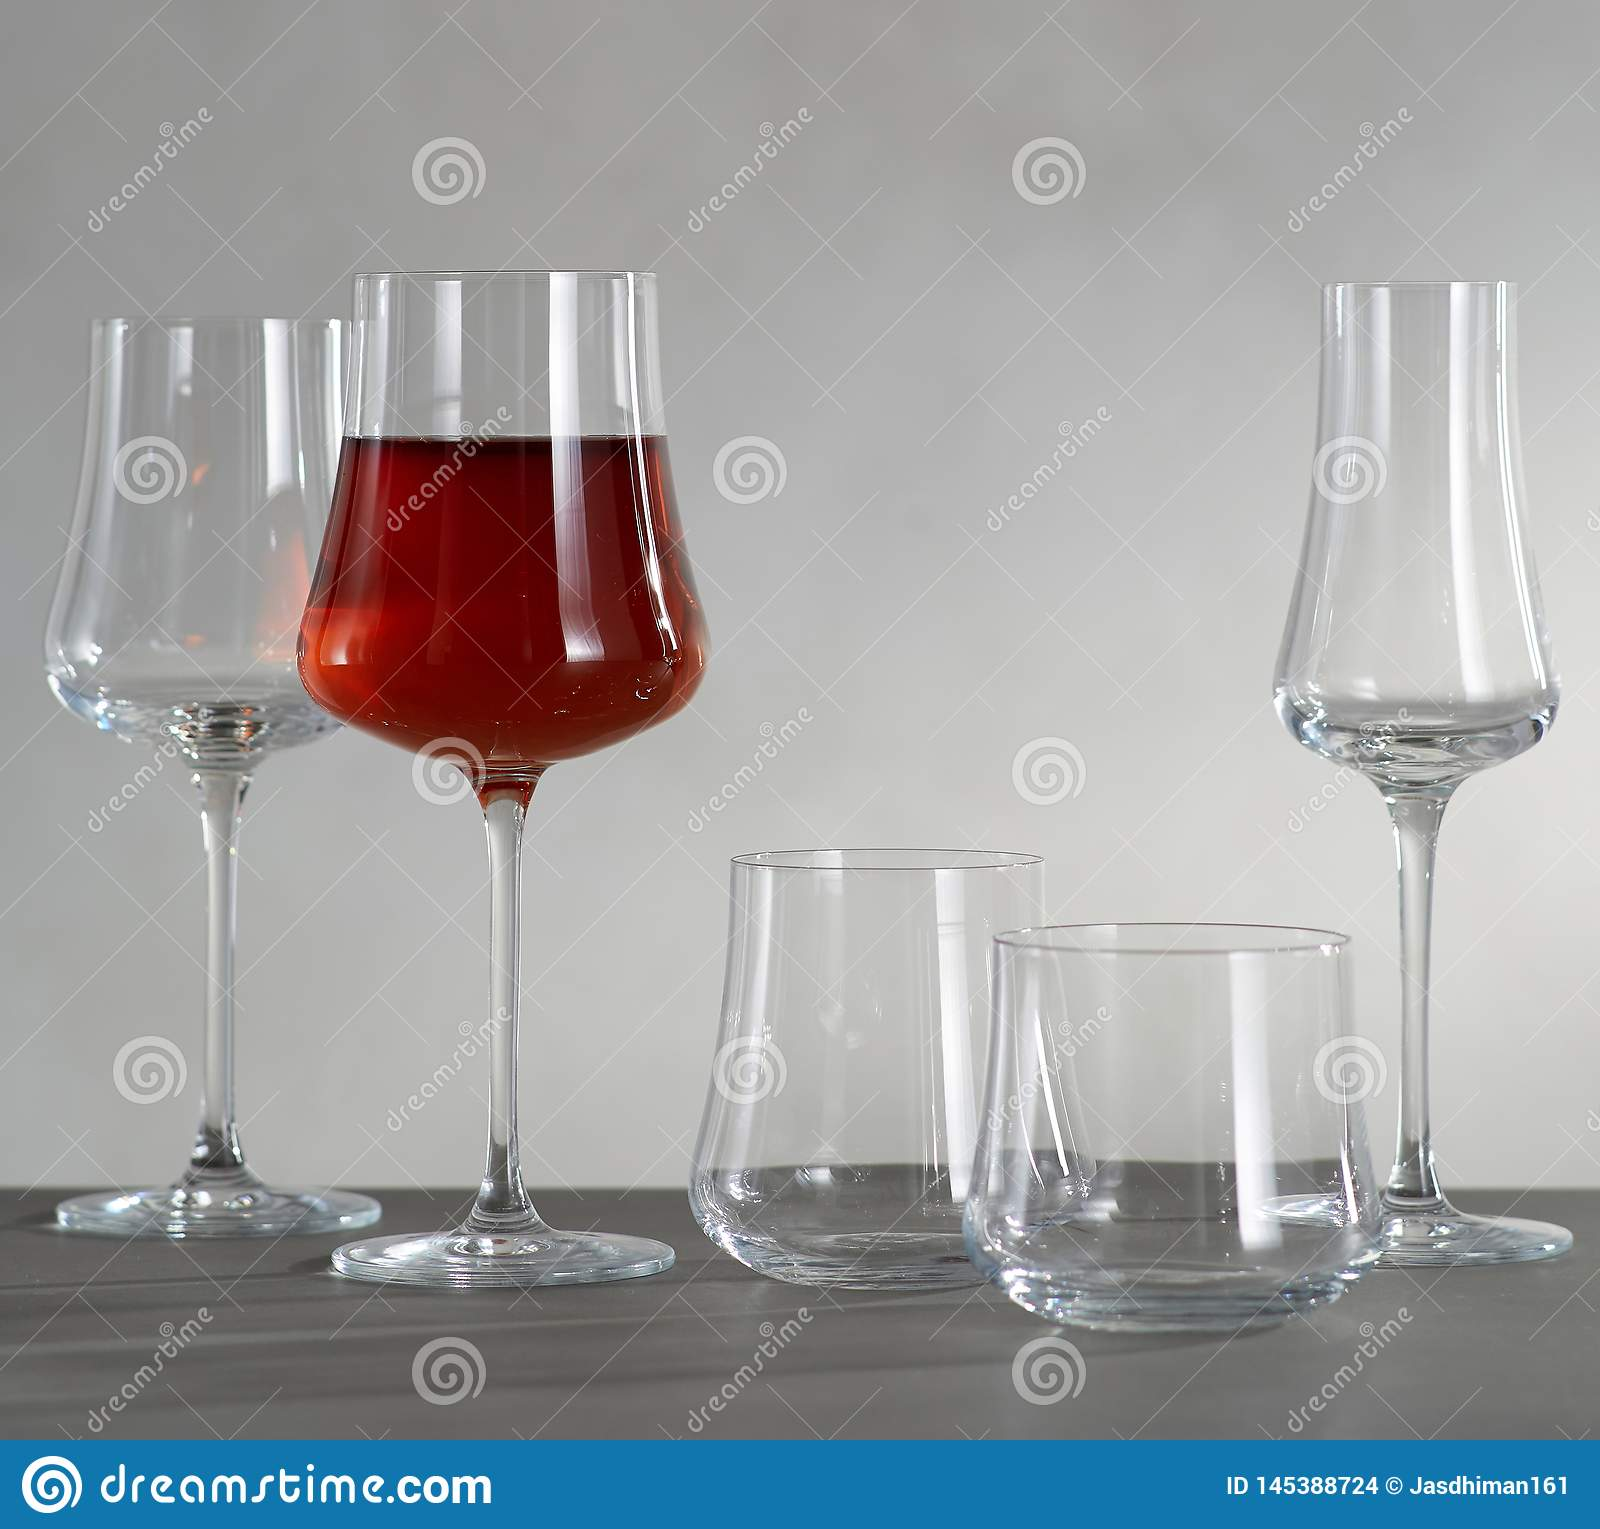 A glass of red wine and four empty wine glasses